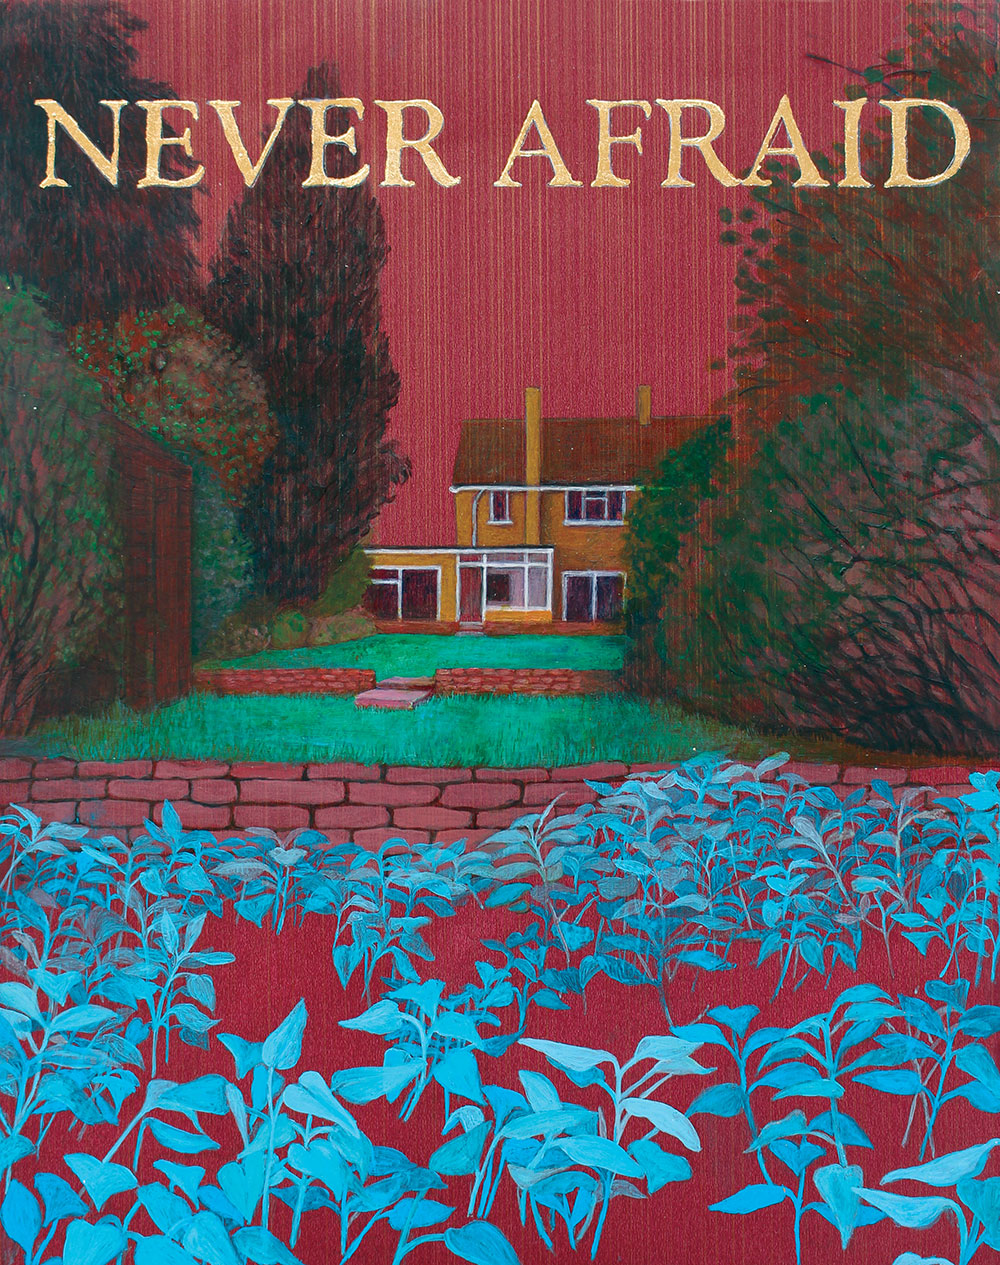 NEVER AFRAID: Season II - Earley Rising, Sarah Sparkes 2015, acrylic and gold leaf on wallpaper 23cm x 29 cm